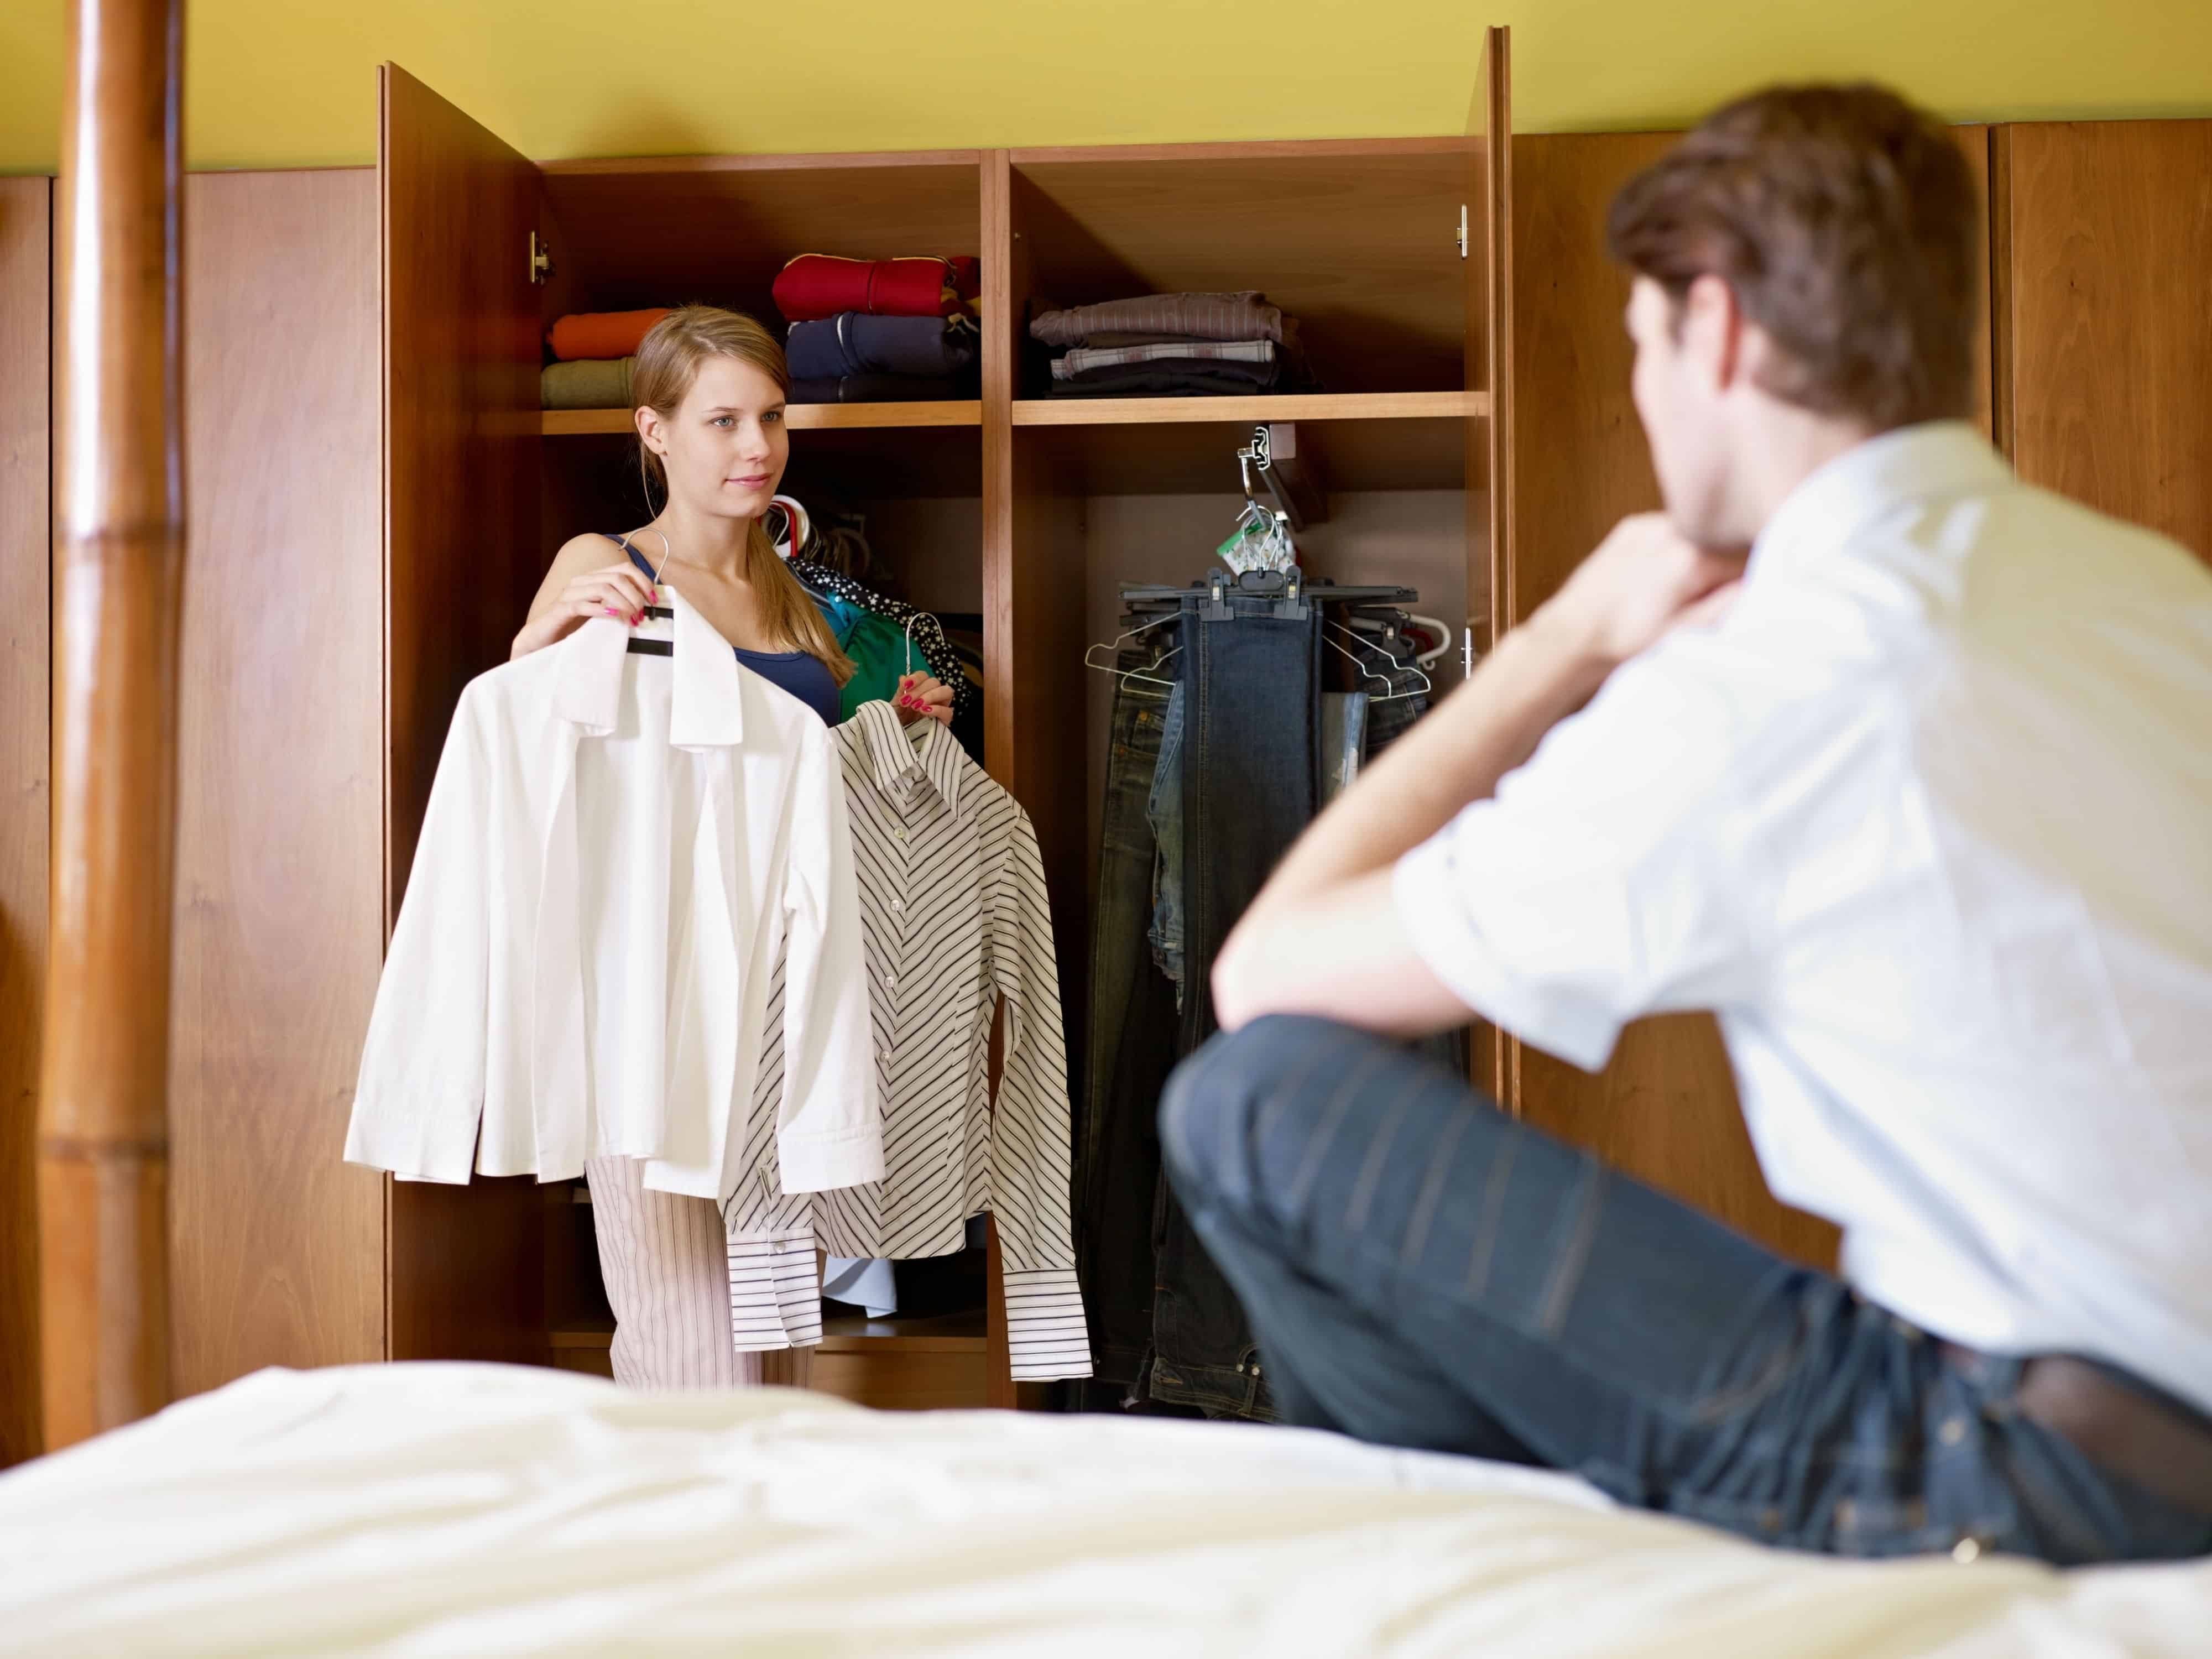 A man and woman deciding what to keep in their closet.